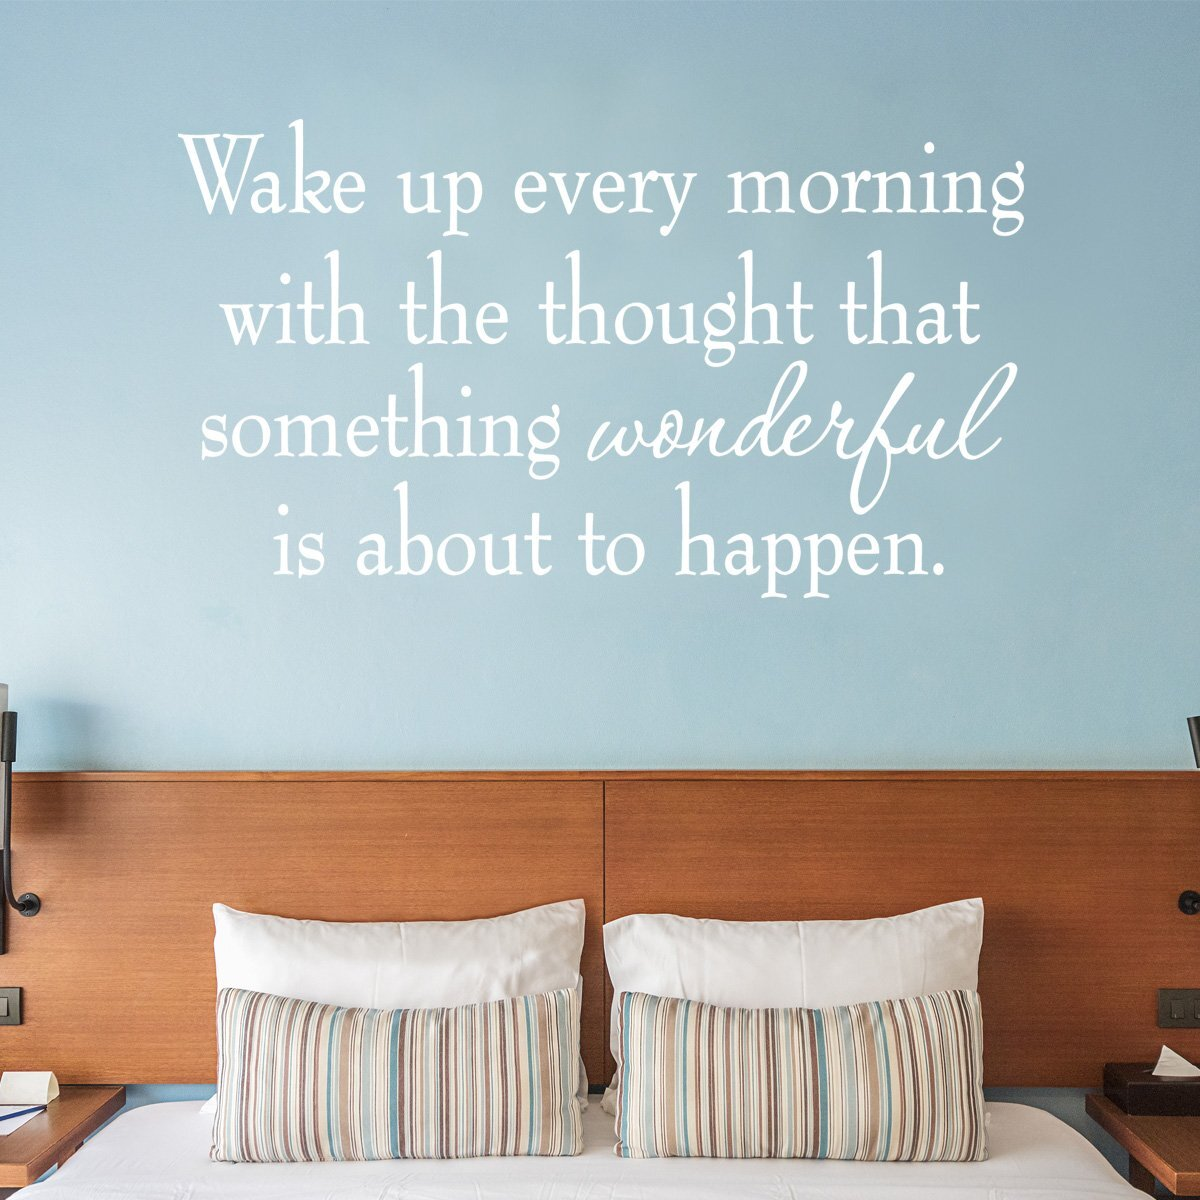 Wall Vinyl Decals Stickers Diy Art Decor Bedroom Quote Decal Fitness Motivation Wall Decals Fit Is Not A Destination It S A Way Of Life Wall Decor Home Living Delage Com Br